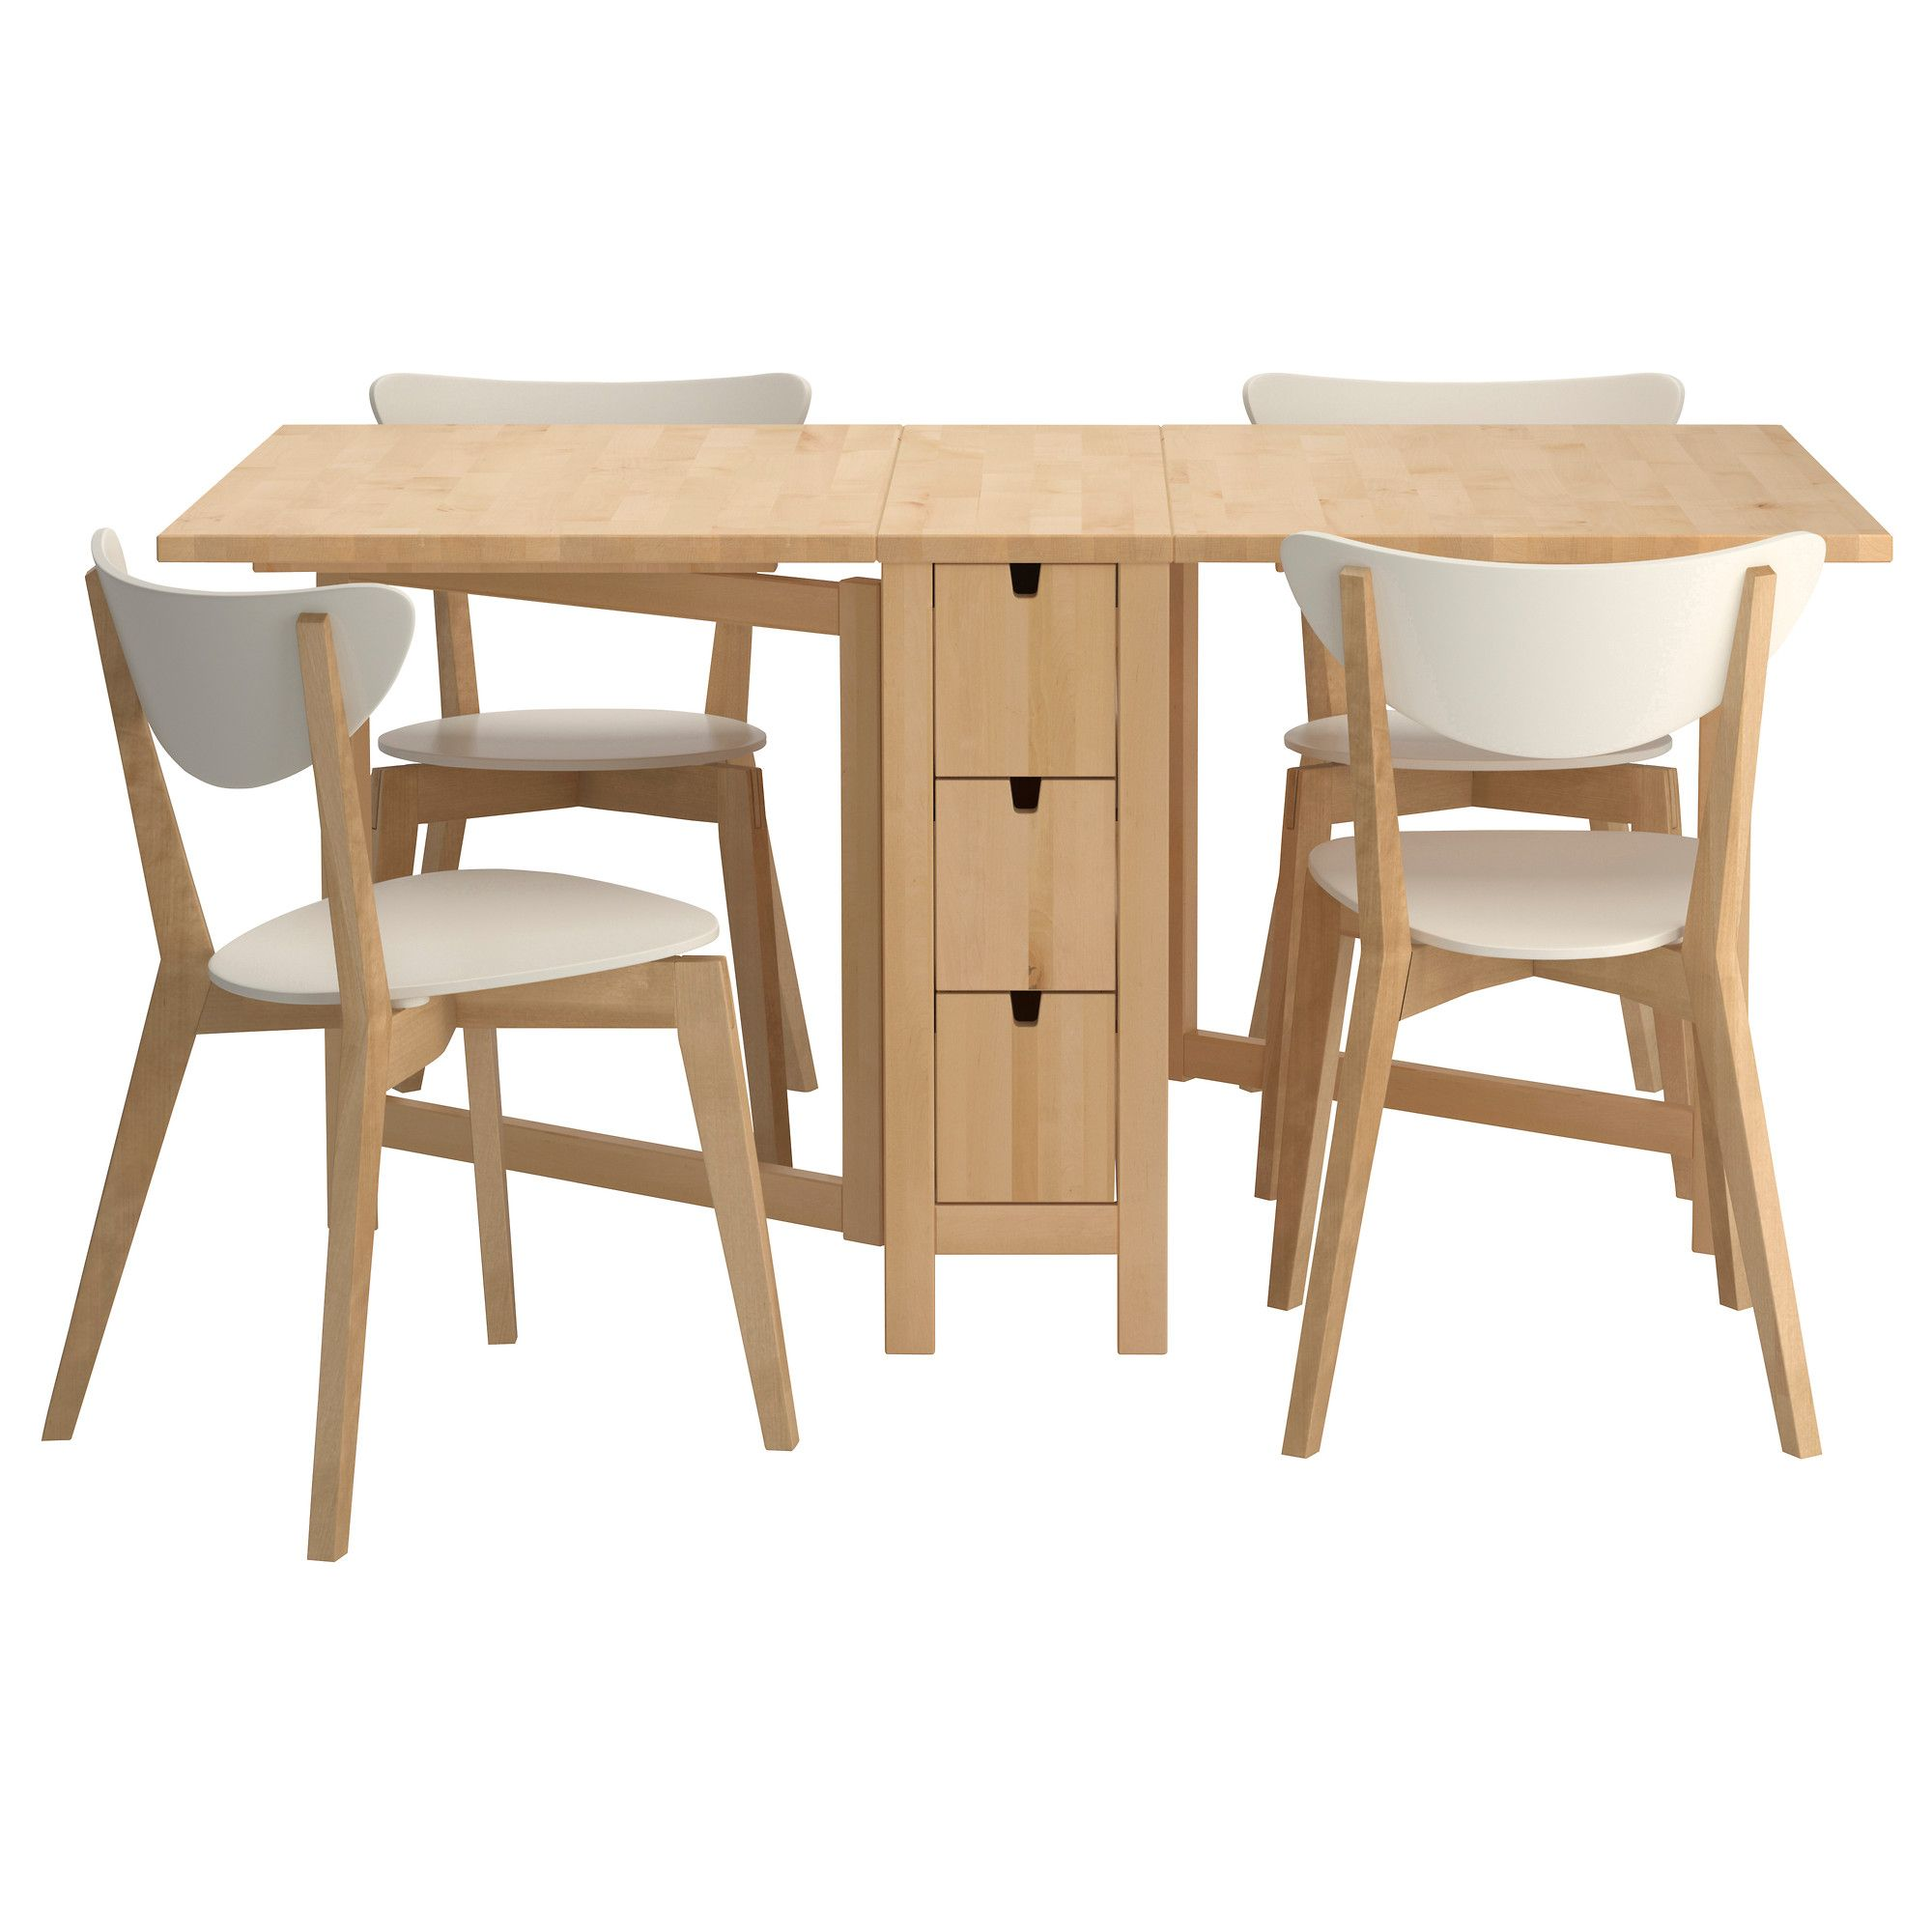 Norden nordmyra table and 4 chairs ikea for the love for Kitchen dining room furniture